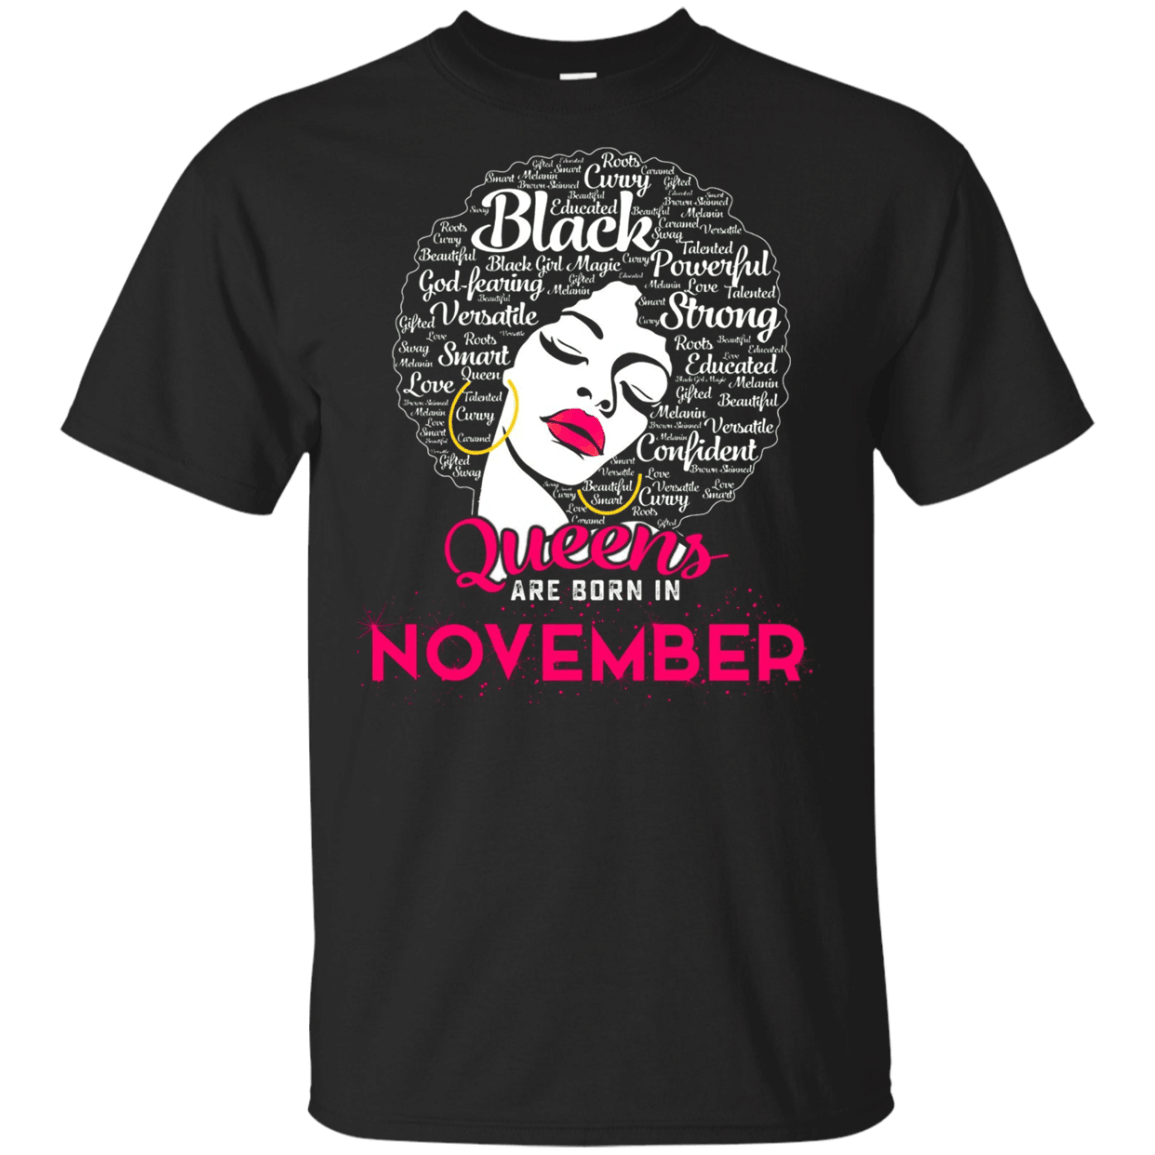 Black Queens Are Born In November Shirt